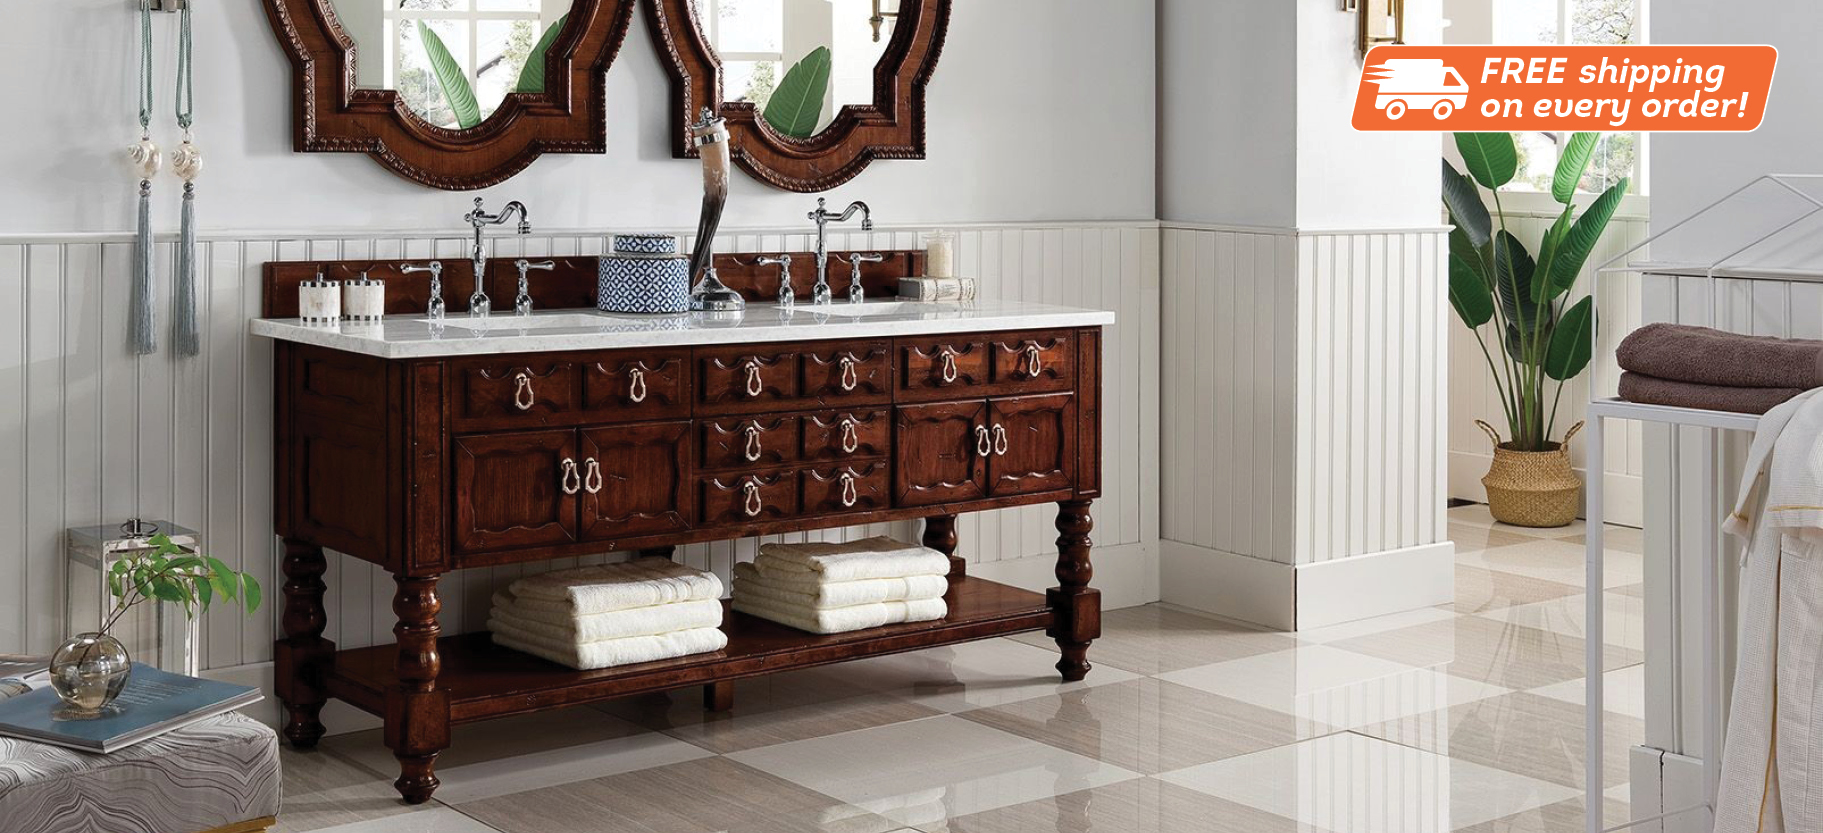 Bathroom Furniture Coleman Furniture